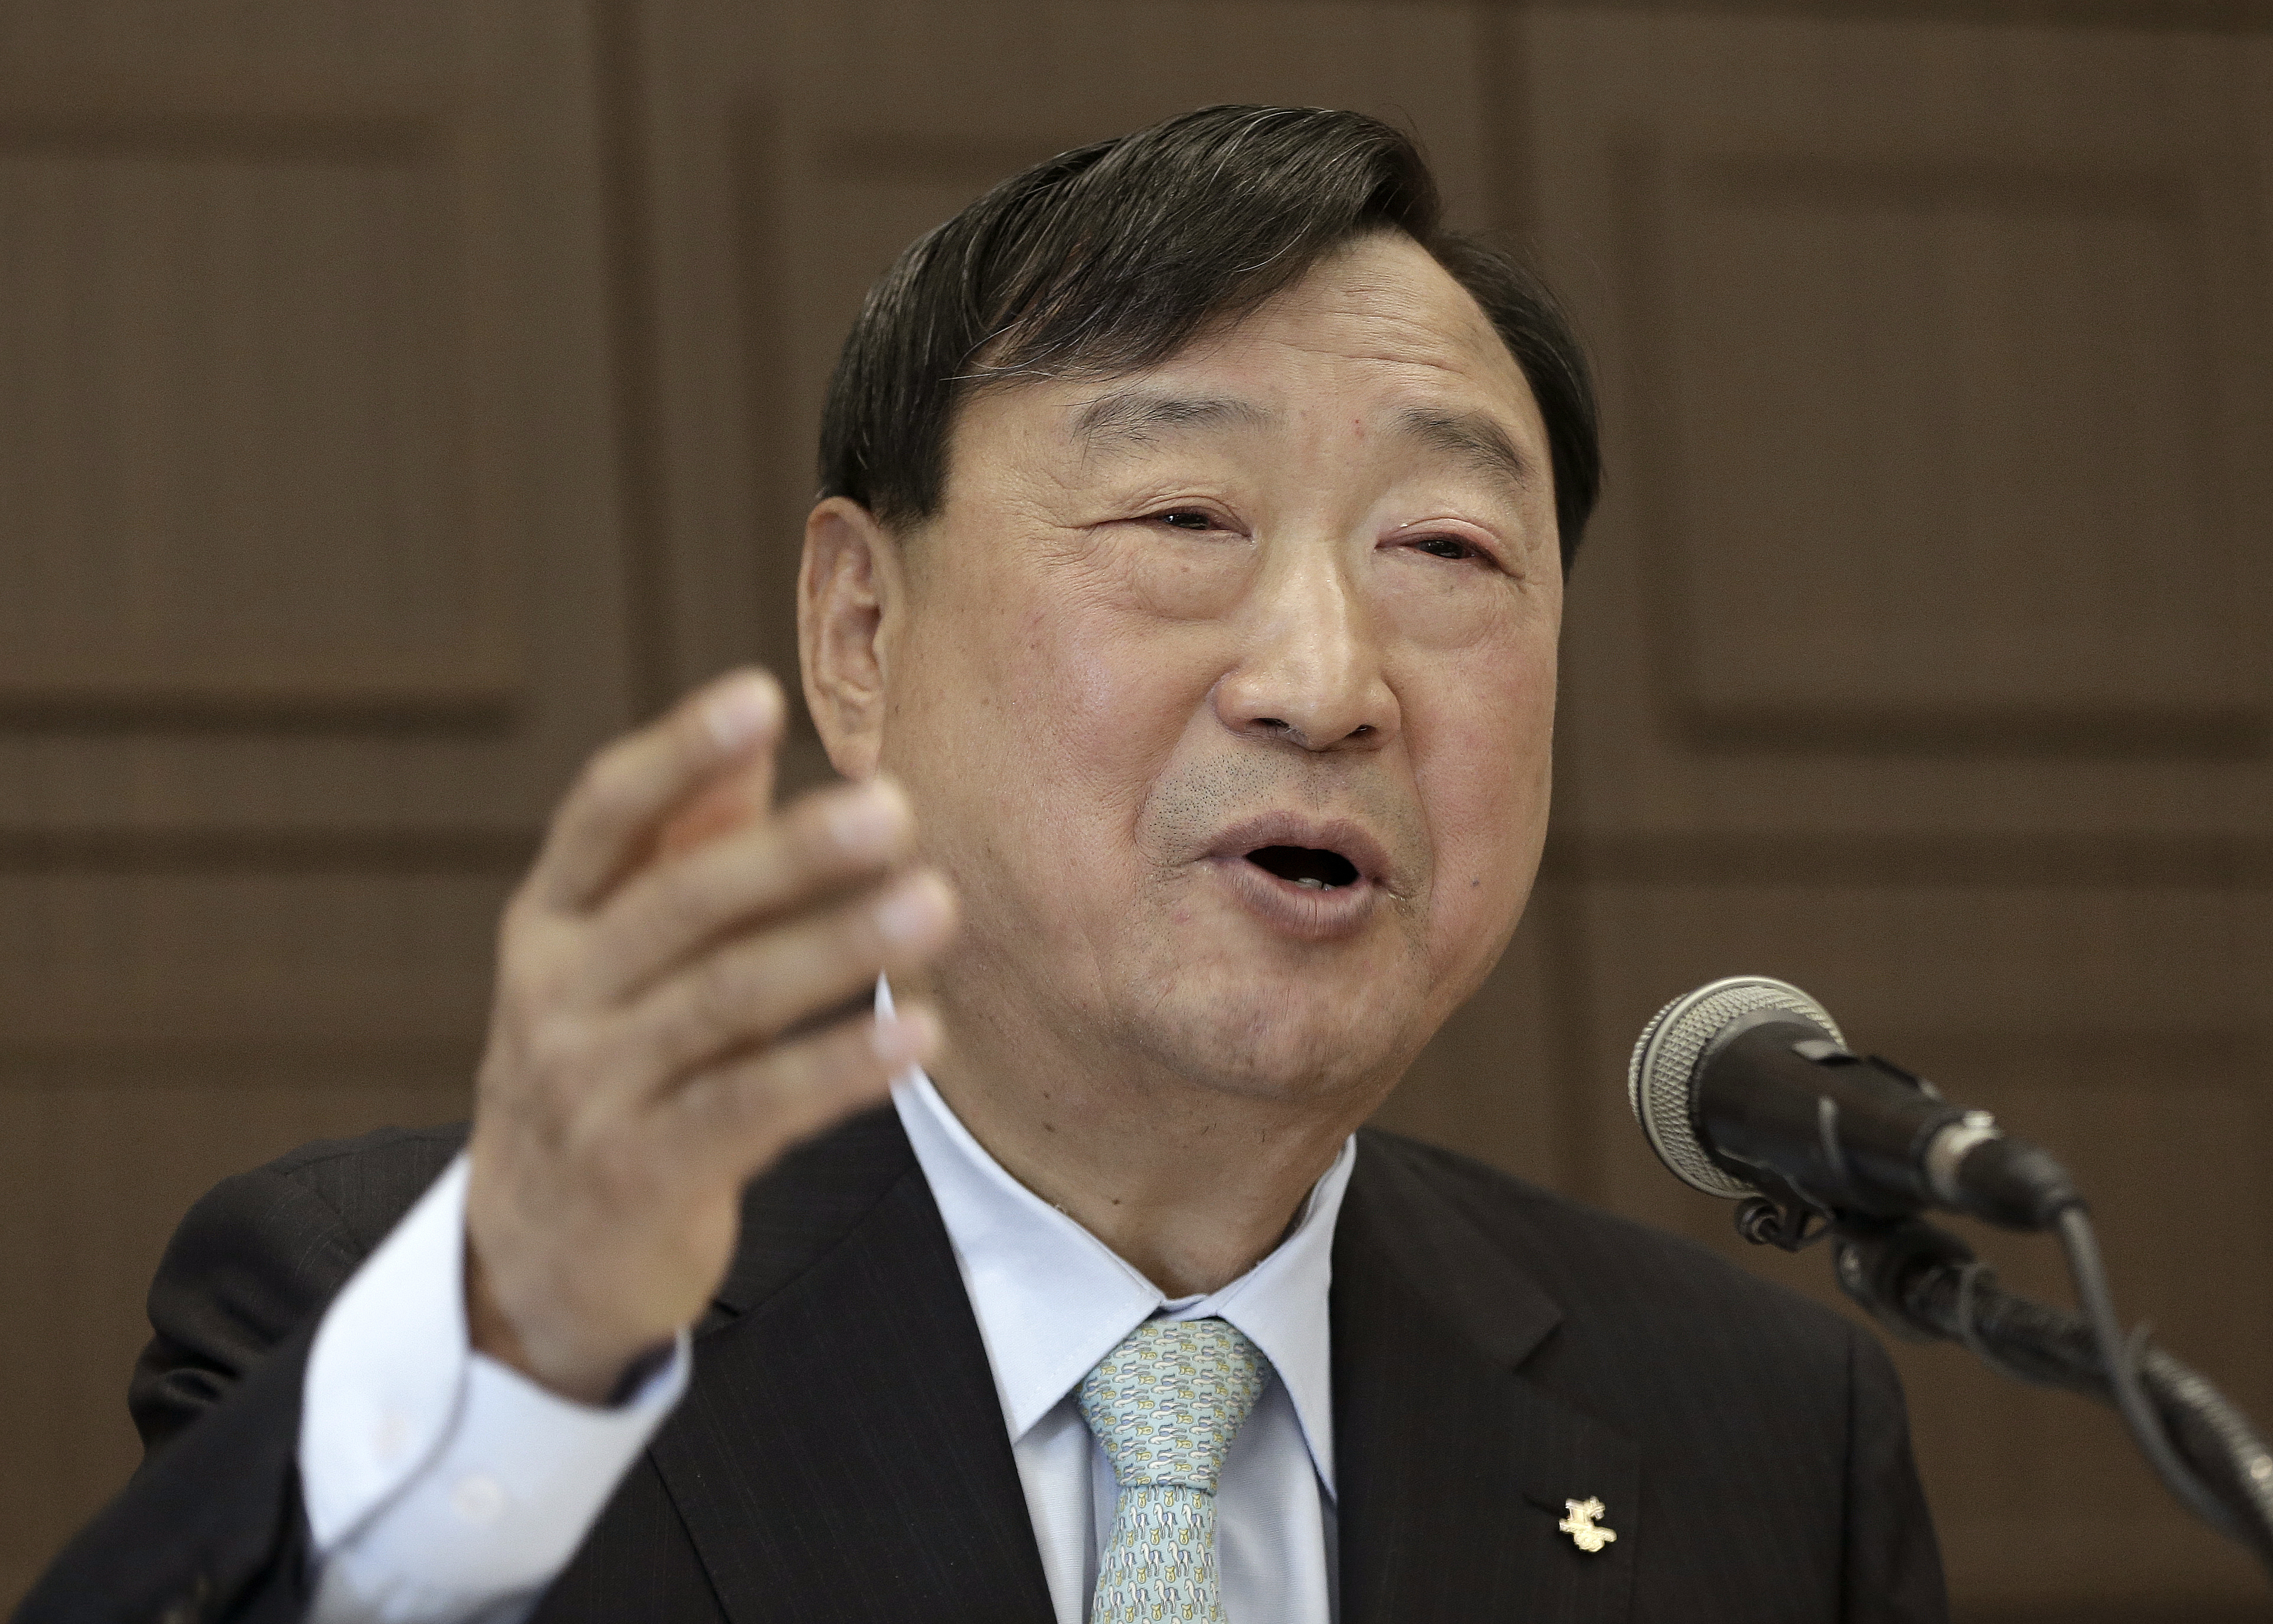 Lee Hee-beom, new chief organizer for the 2018 Winter Olympics in Pyeongchang, speaks during a press conference in Seoul, South Korea, Friday, May 20, 2016. Lee says preparations are on track with less than two years to go despite lingering concerns over